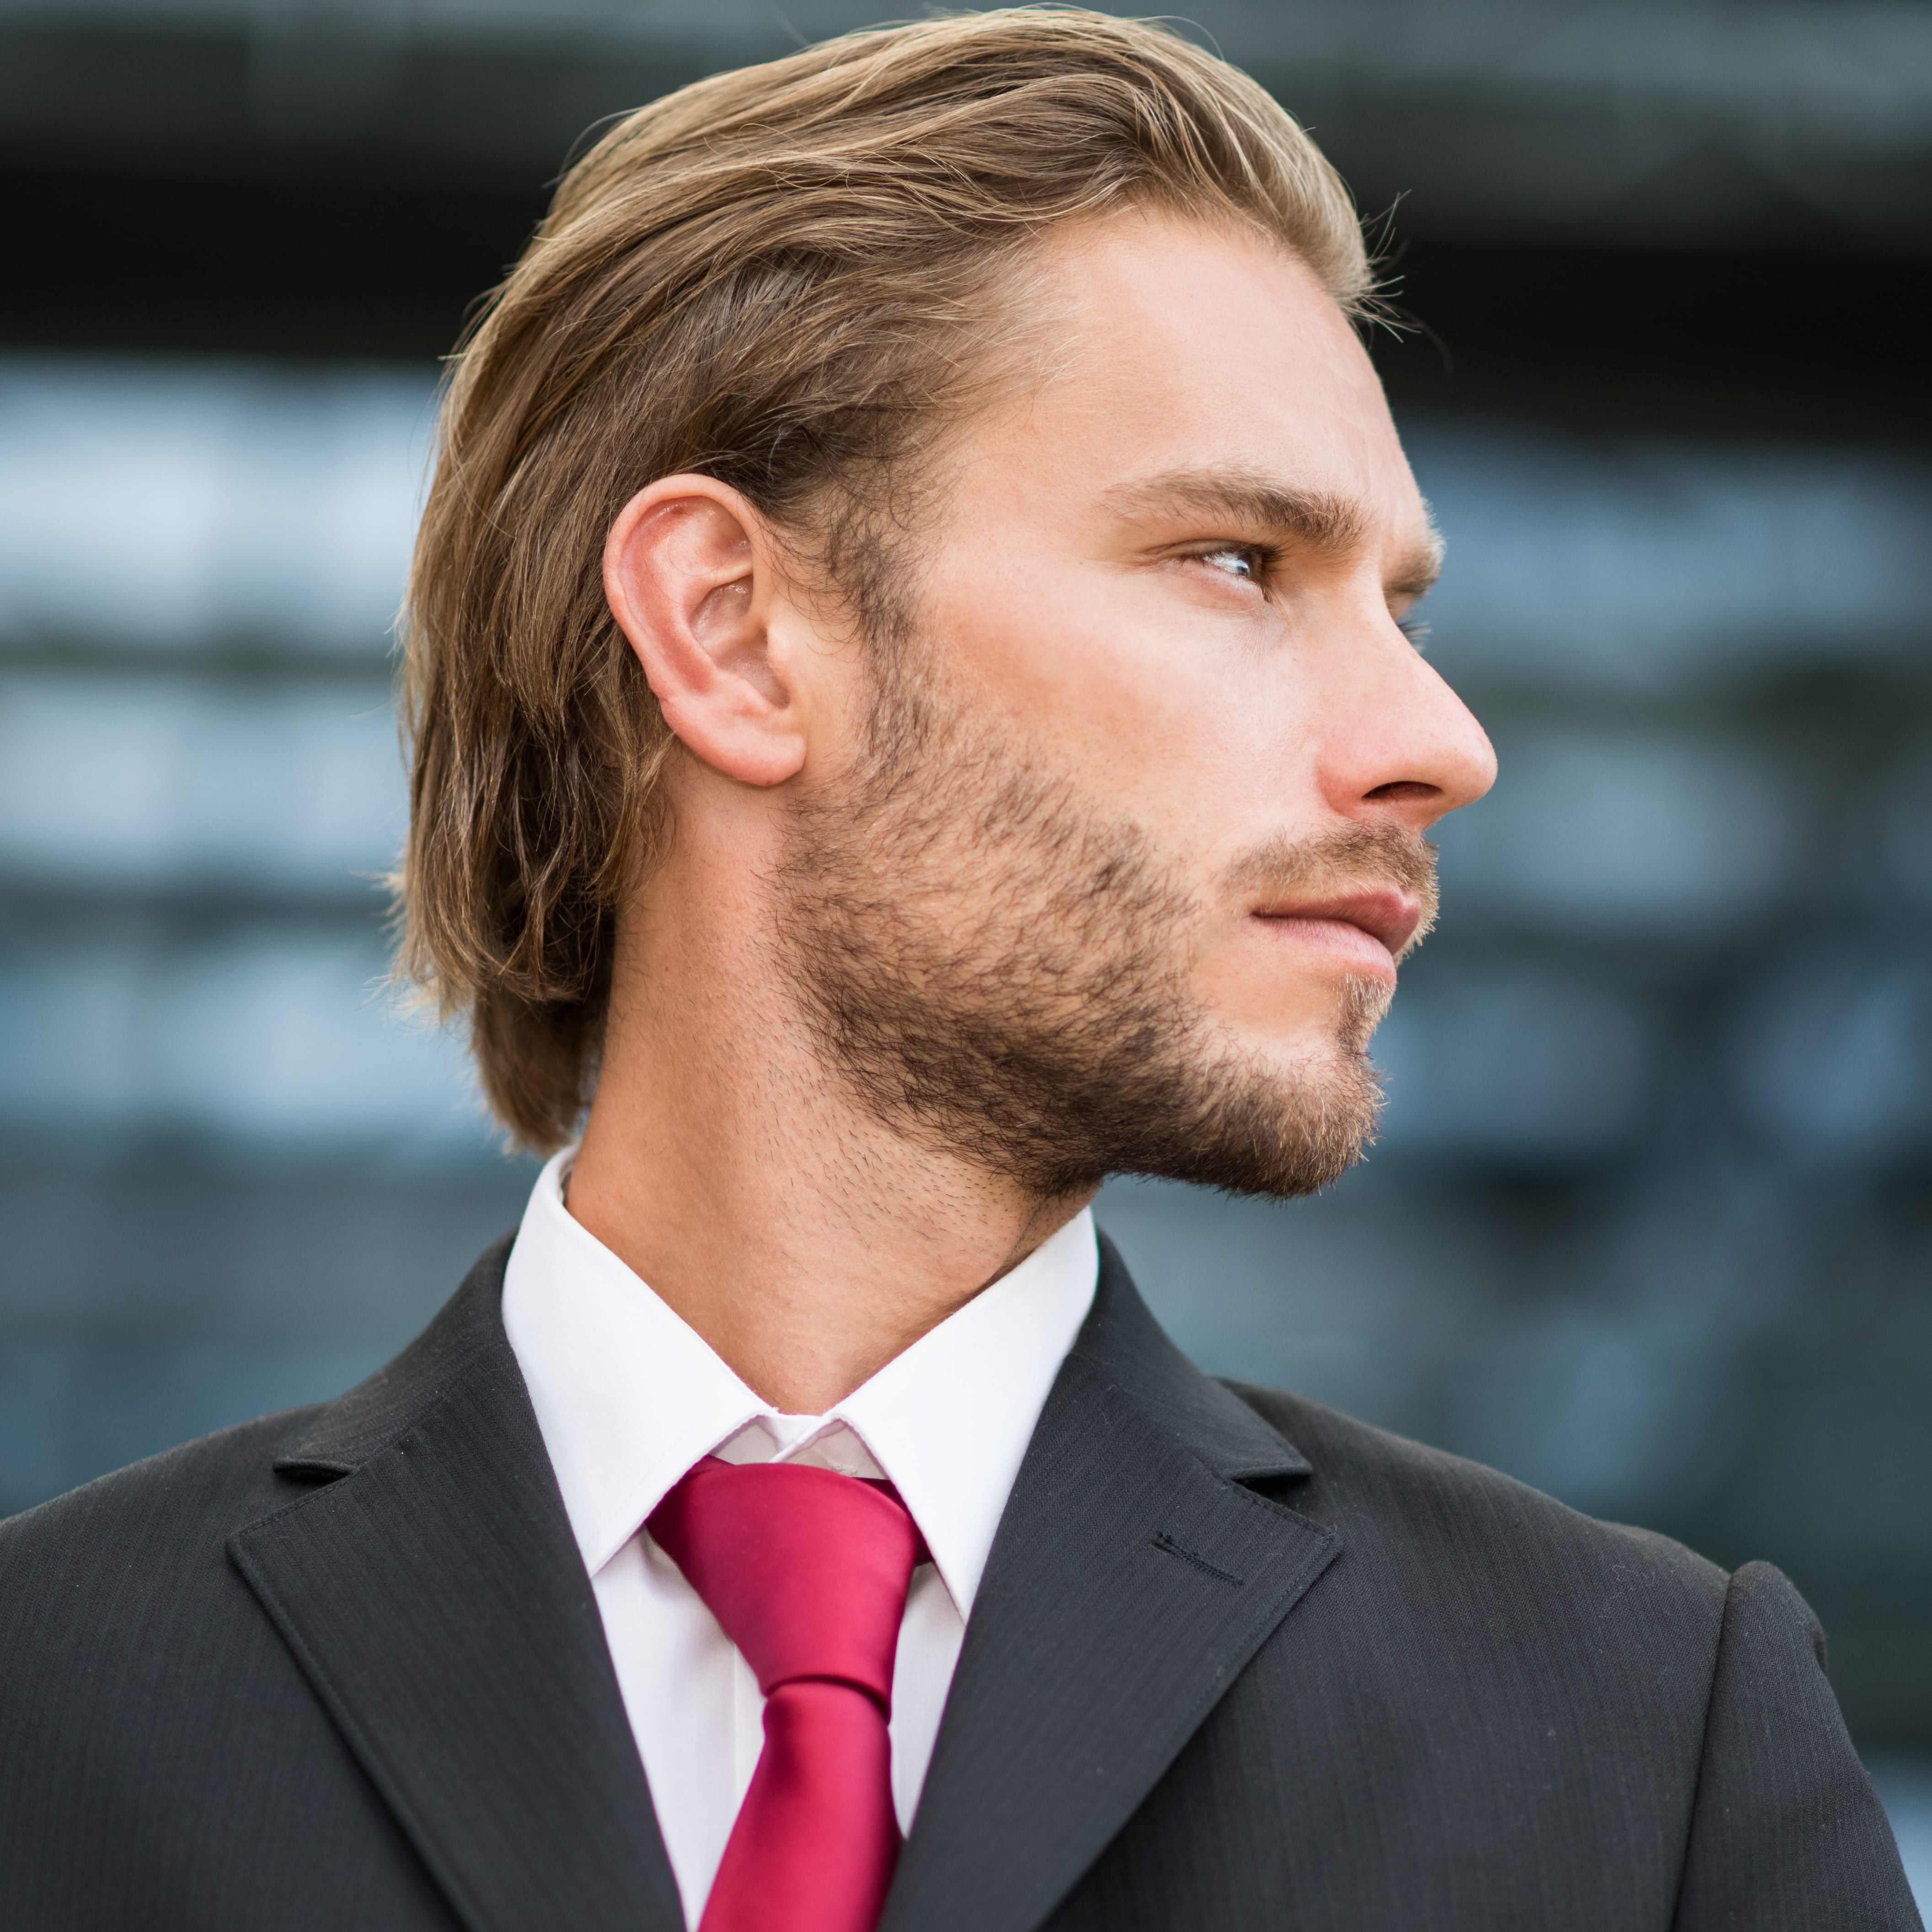 30 slicked back hairstyles a classy style made simple